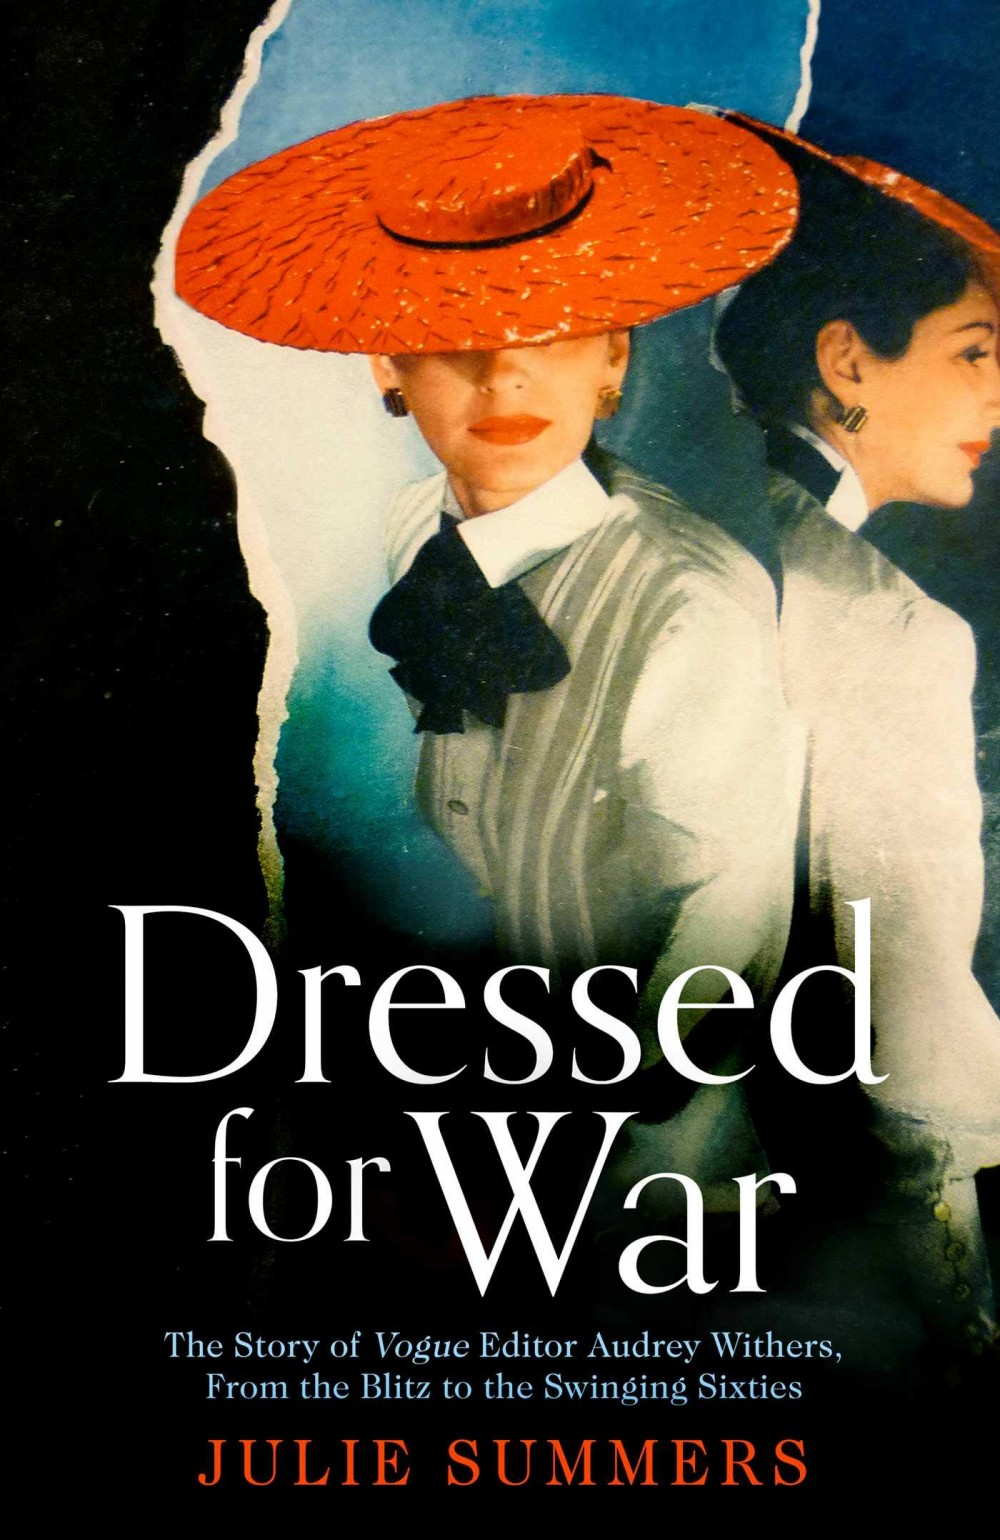 Dressed for War: the story of British Vogue editor Audrey Withers